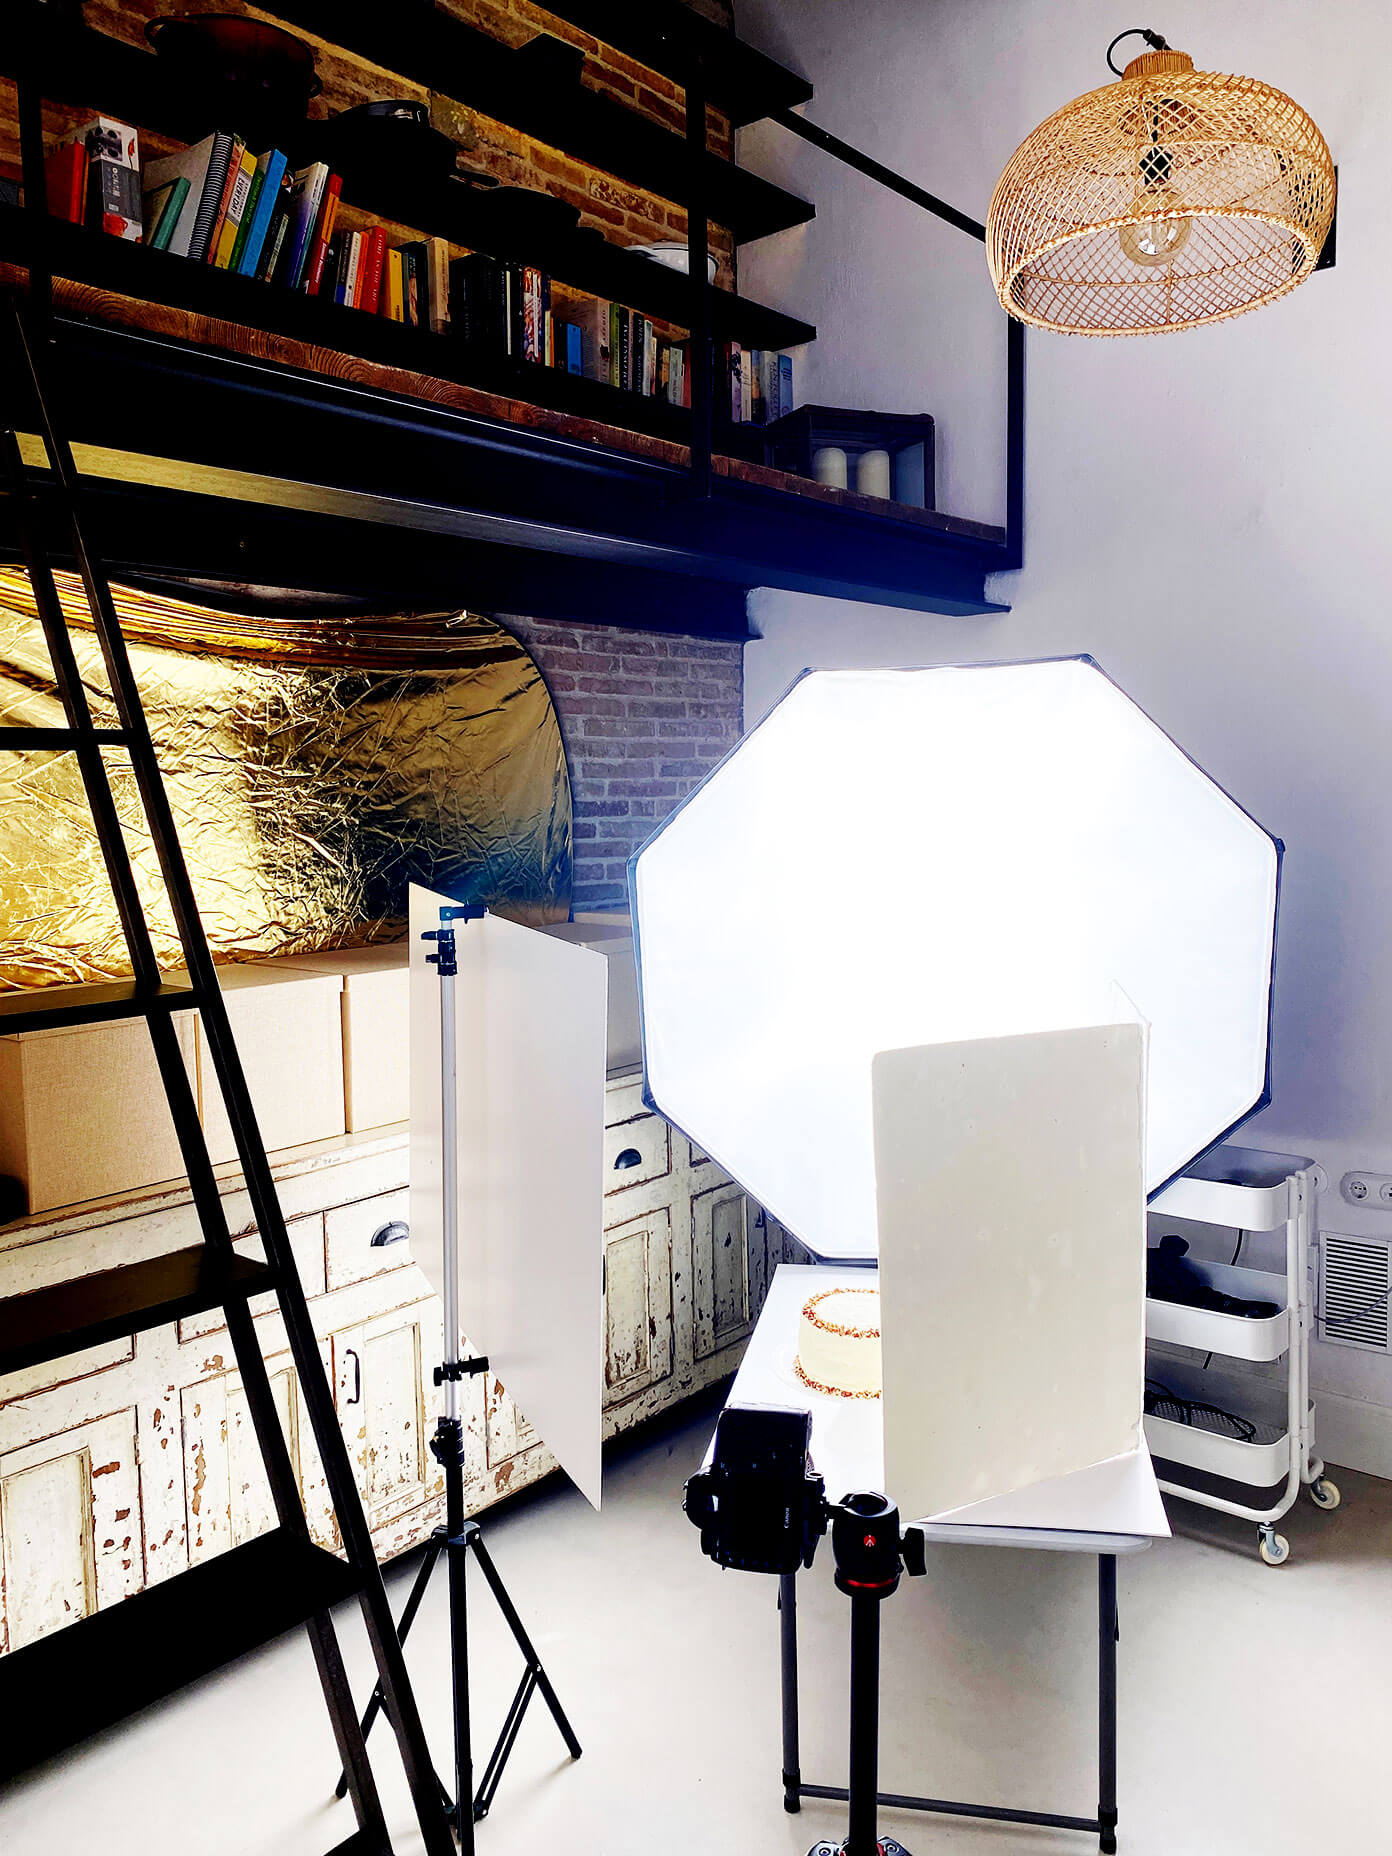 Artificial Lighting Setup